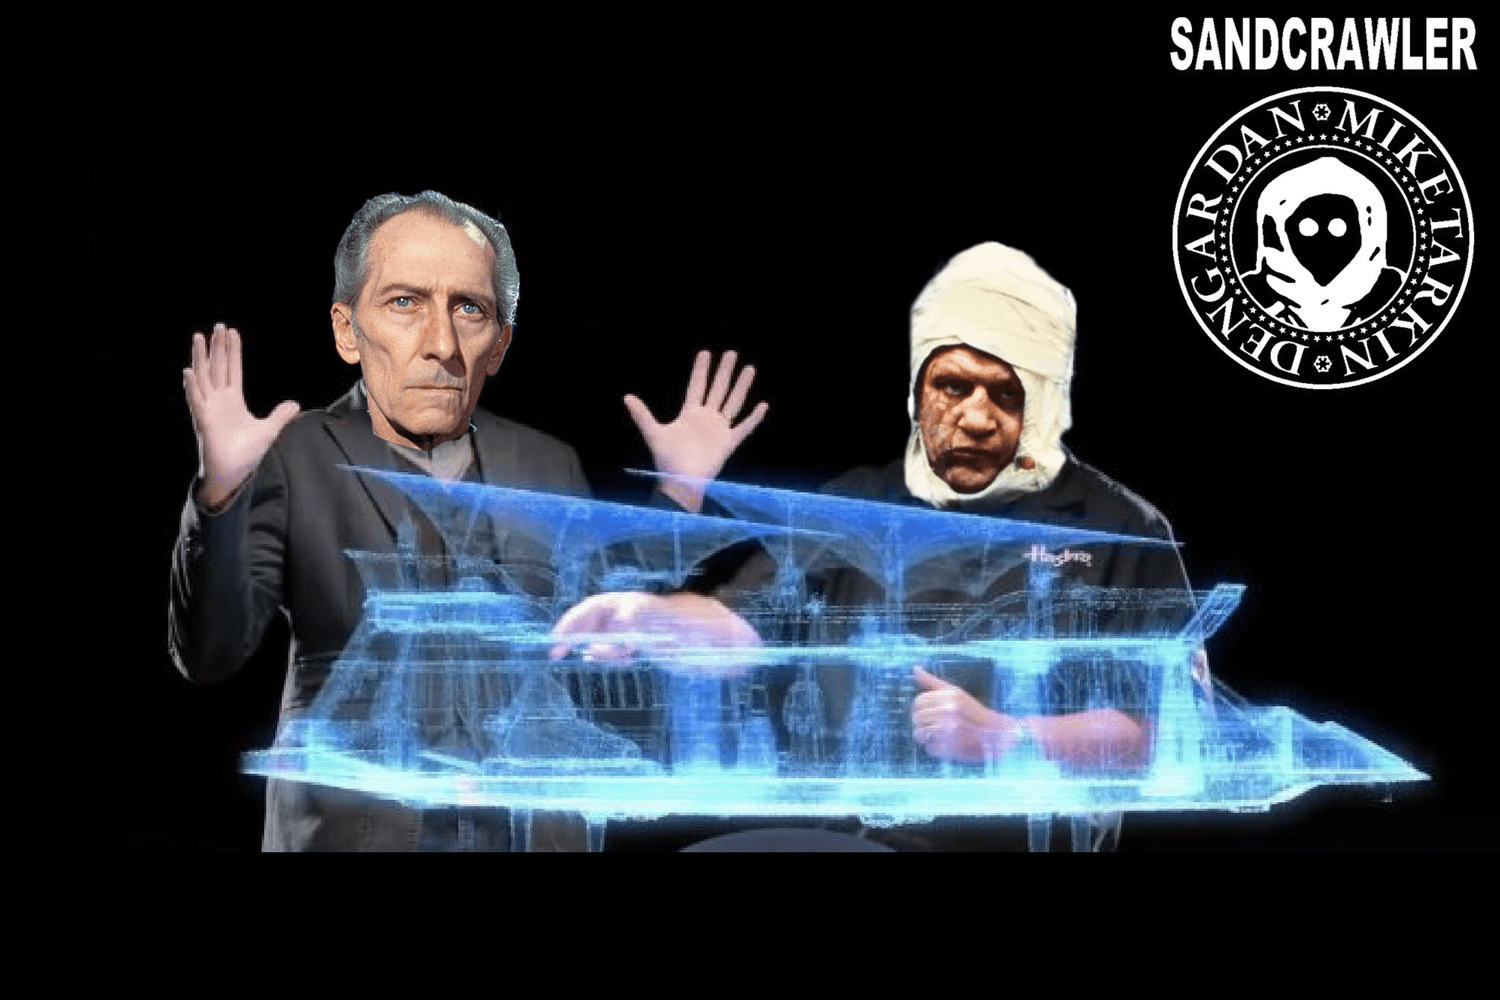 The Sandcrawler #46: HasLab-We're Mostly Excited But Confused